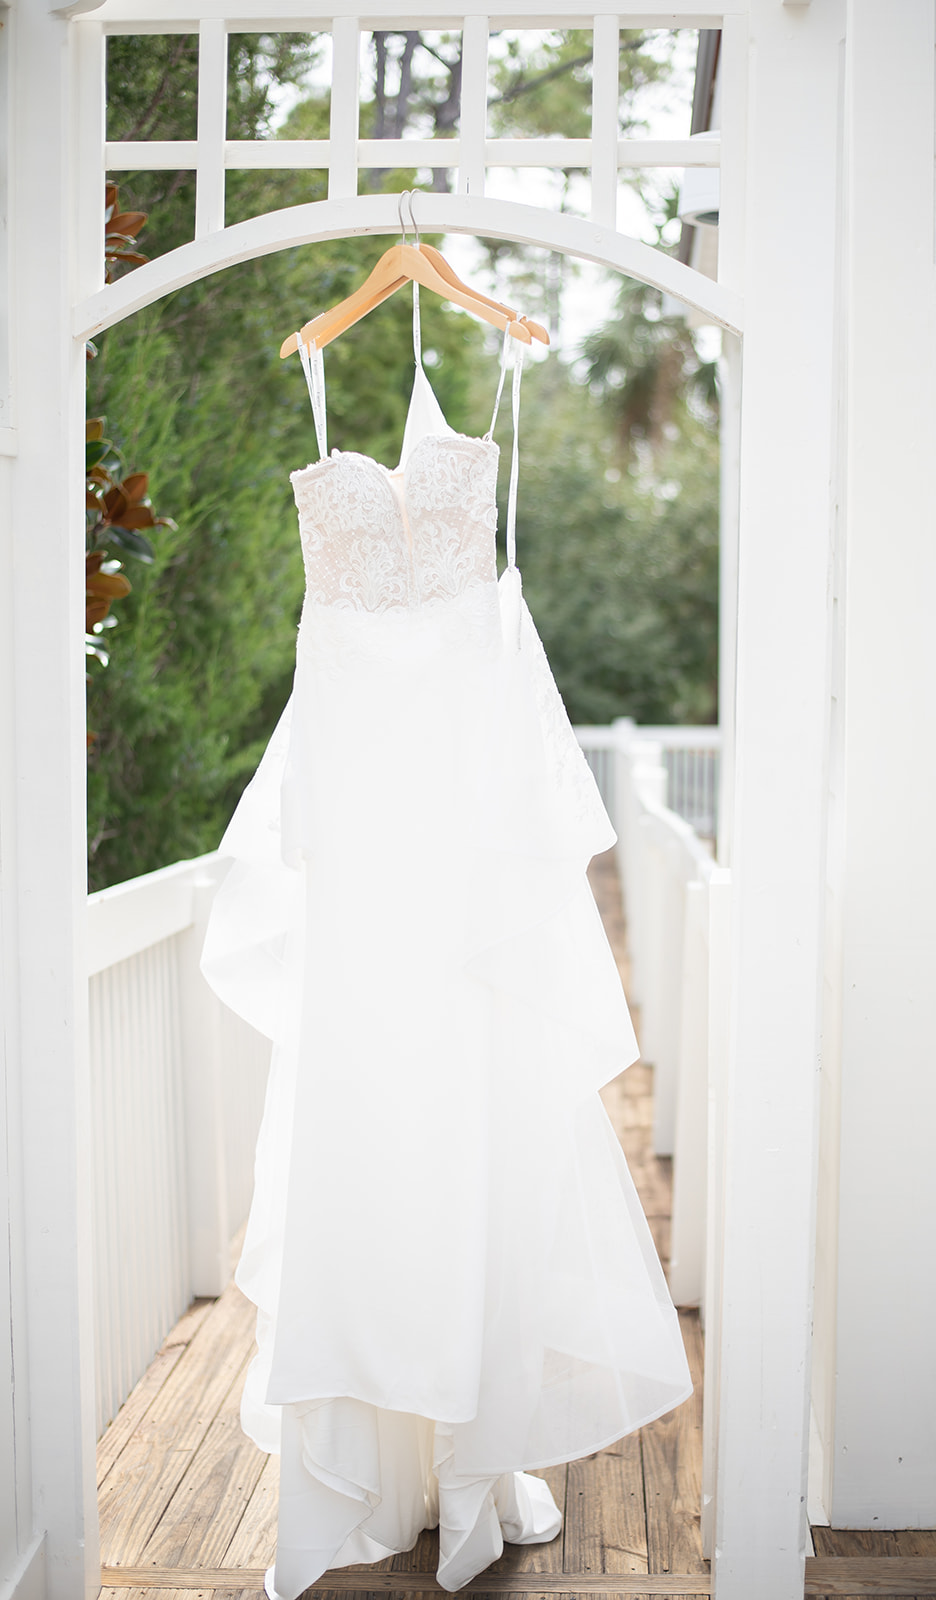 ivory_and_beau_savannah_bridal_shop_the_big_fake_wedding_savannah_lamour_by_calla_blanche_savannah_wedding_Dress_savannah_Wedding_gown_Savannah_wedding_planner_savannah_wedding_coordinator_savannah_wedding_florist_ruth_terrero_photography_1.jpg